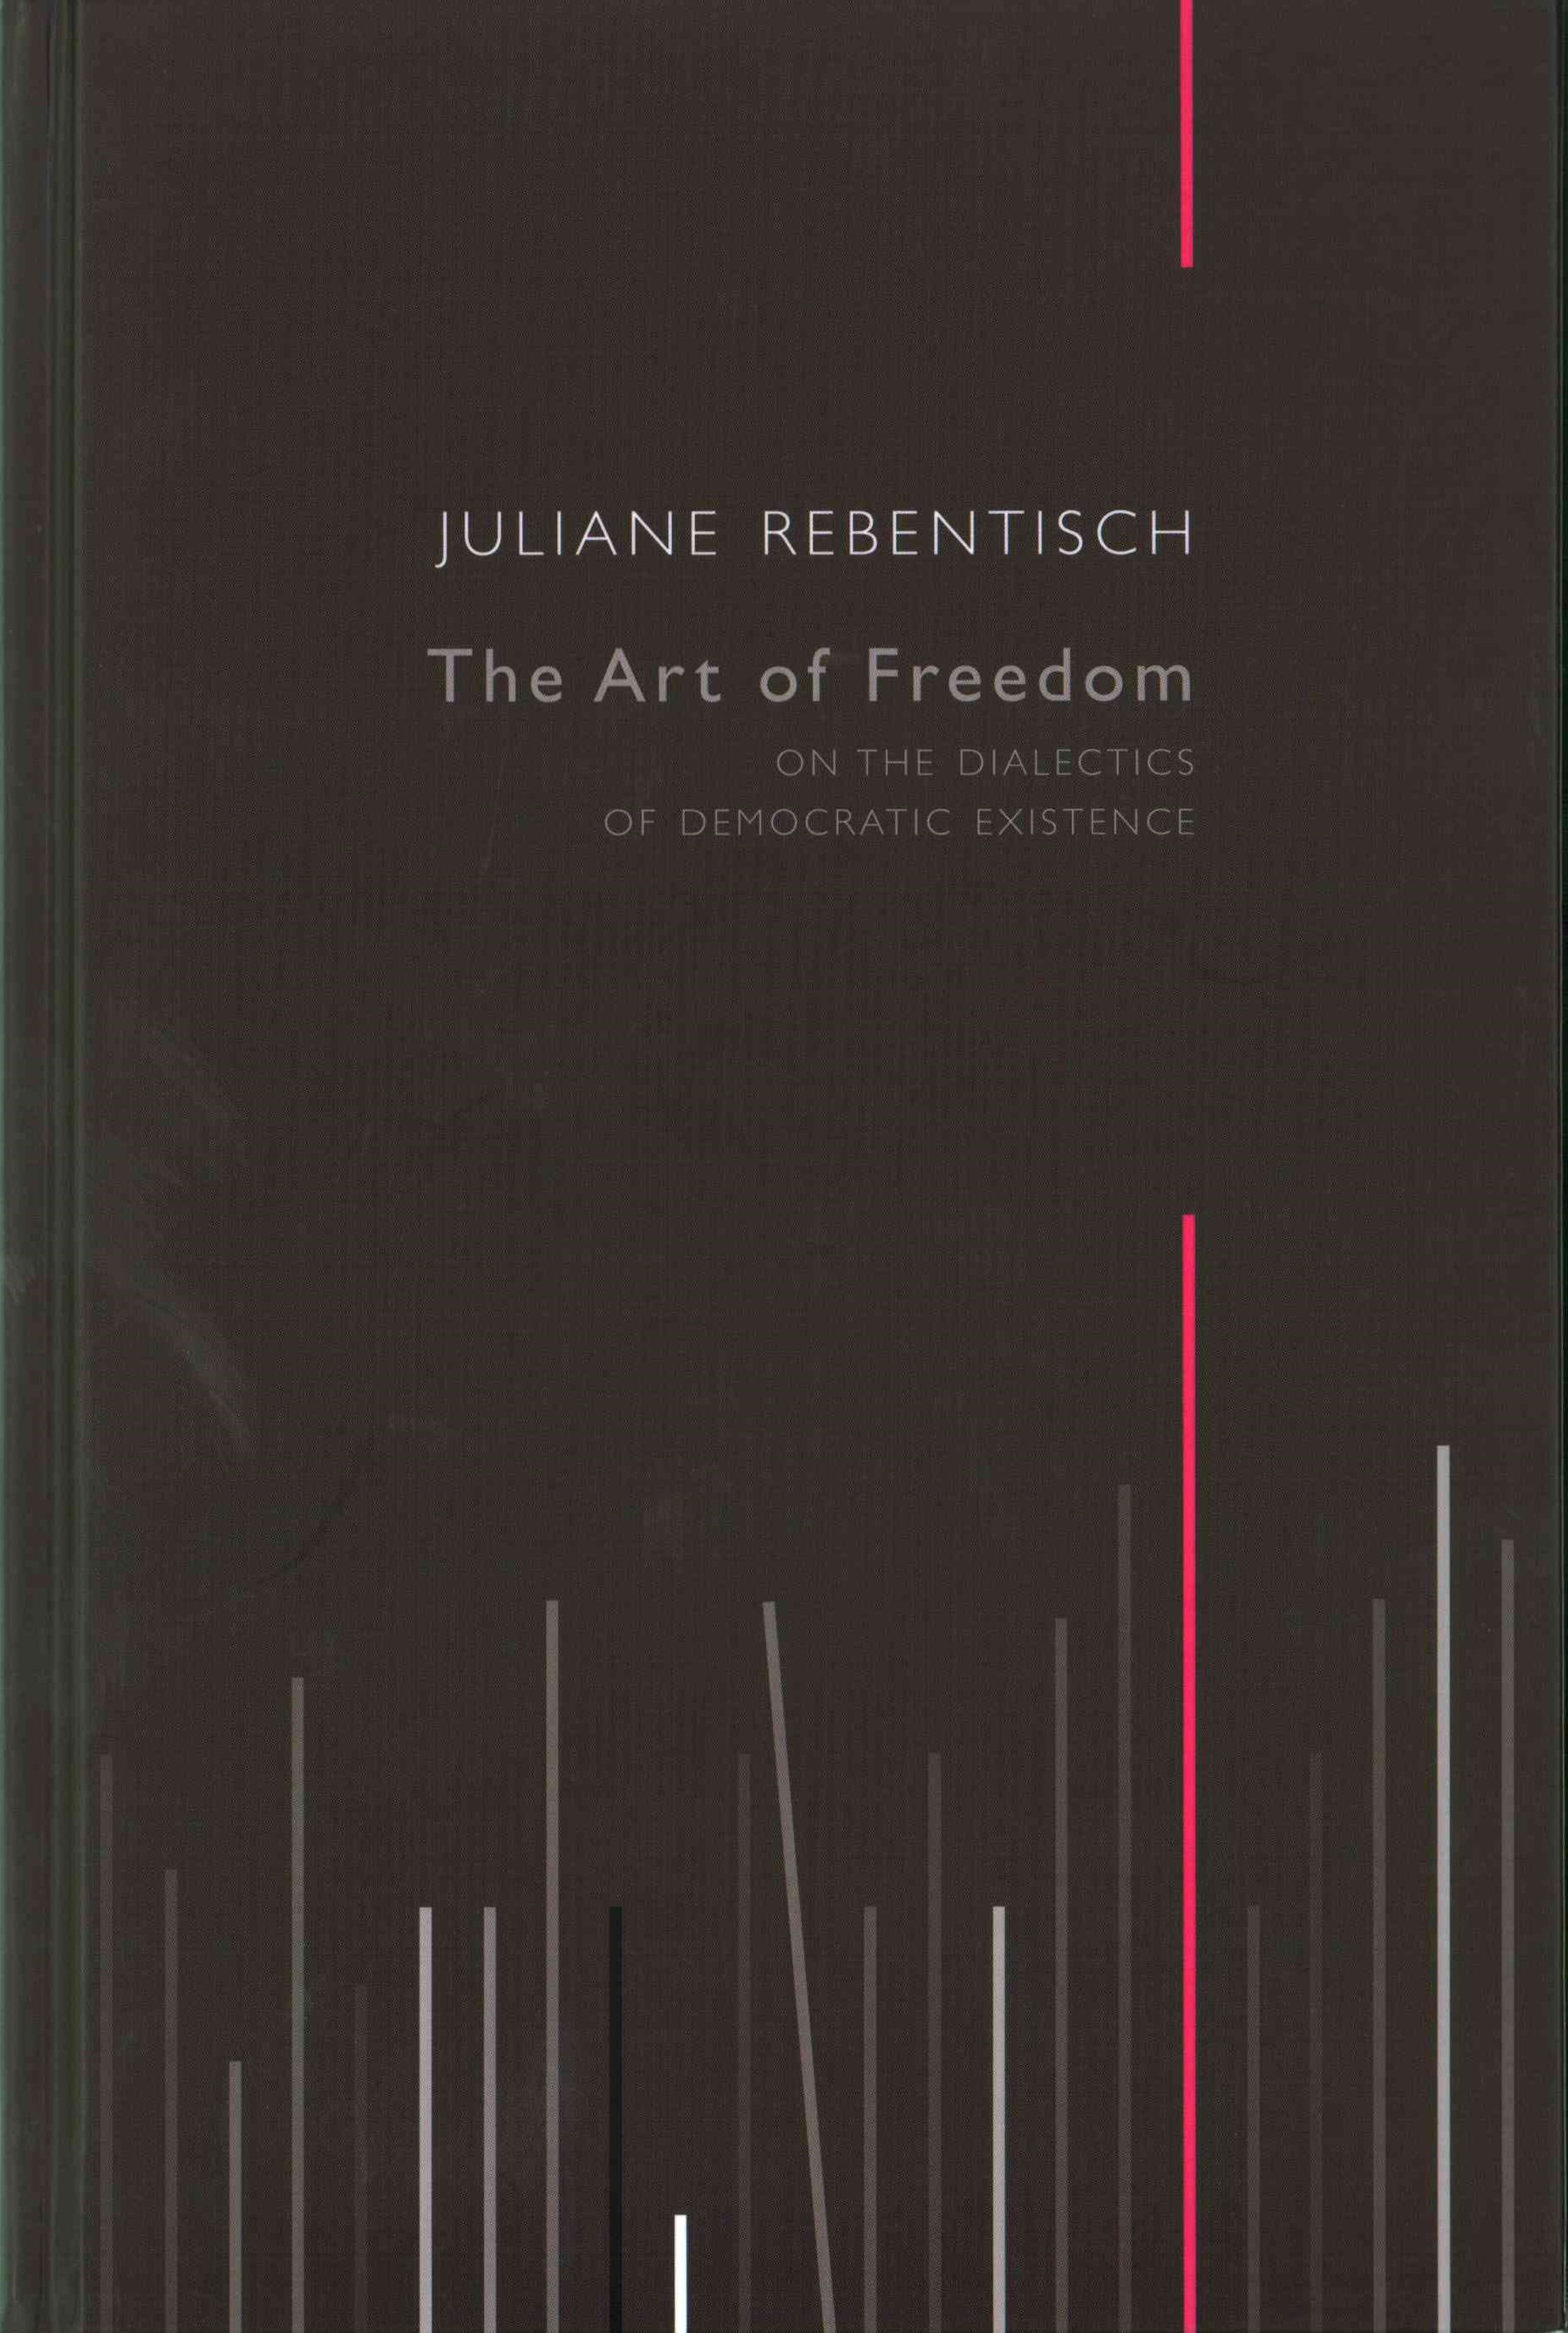 The Art of Freedom - on the Dialectics of         Democratic Existence